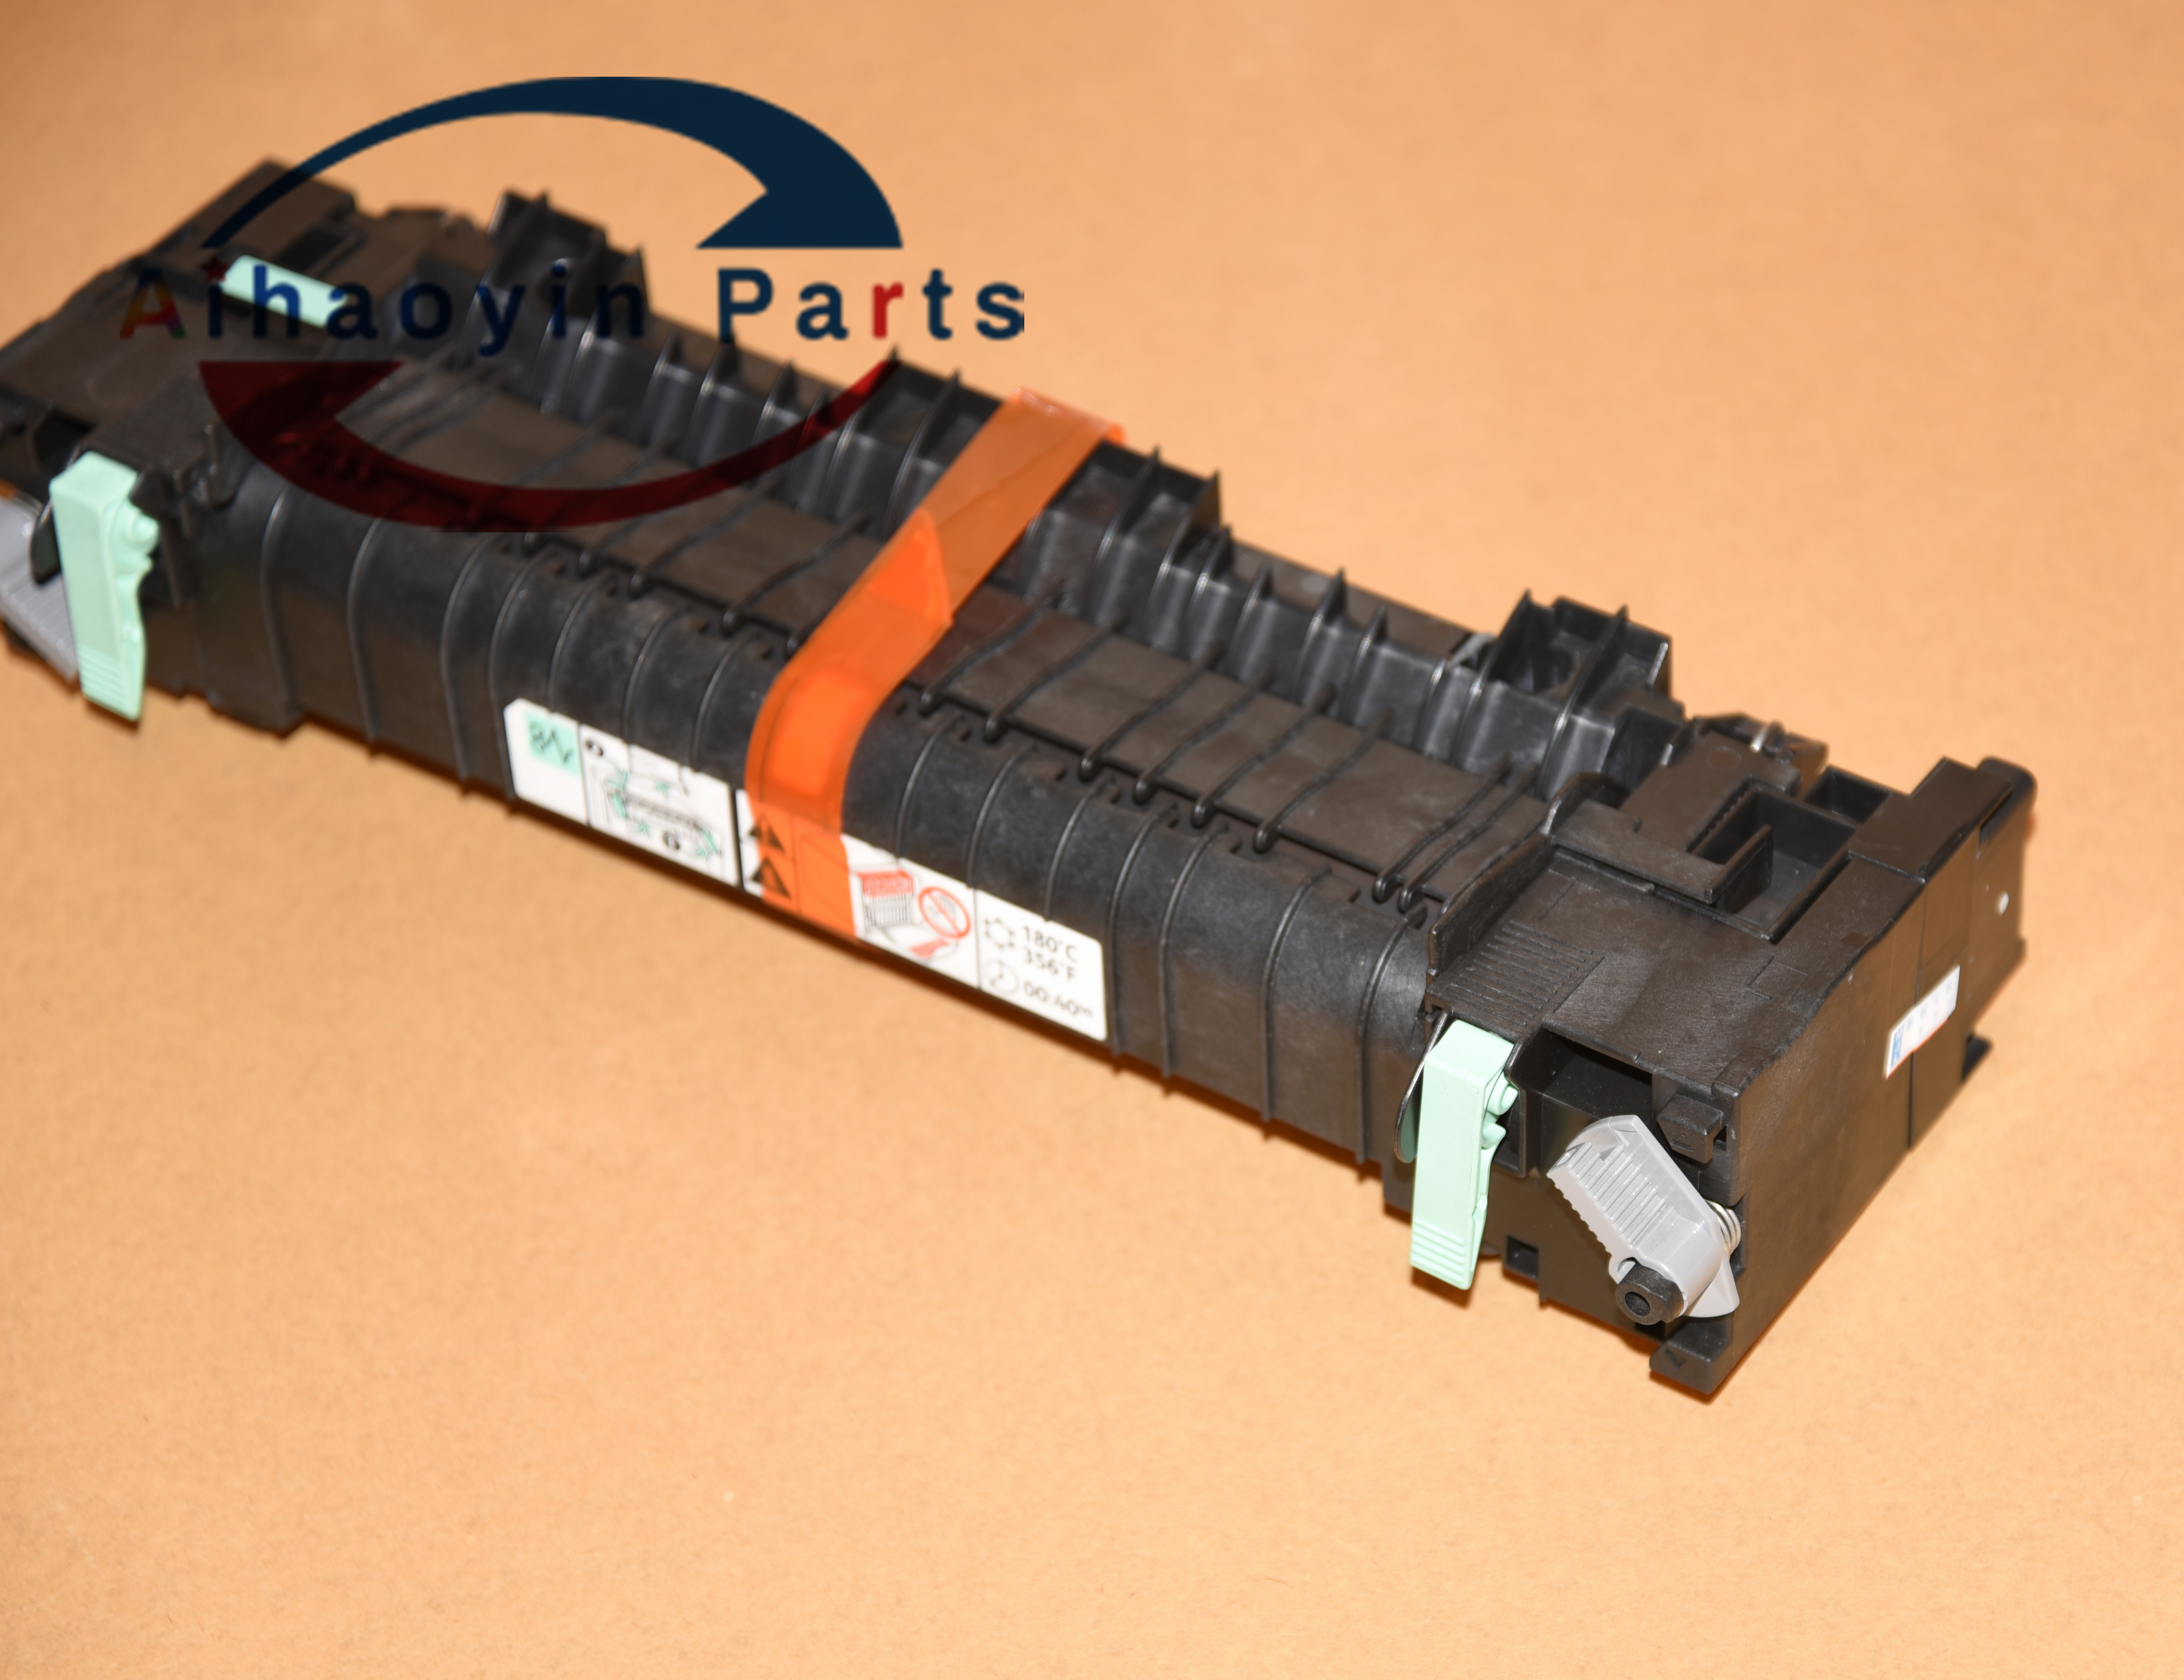 refubish  Fuser Unit Assembly 220V 115R00085 for Xerox Phaser 3610 WorkCentre 3615 WorkCentre 3655 WorkCentre 3655i Refurbished